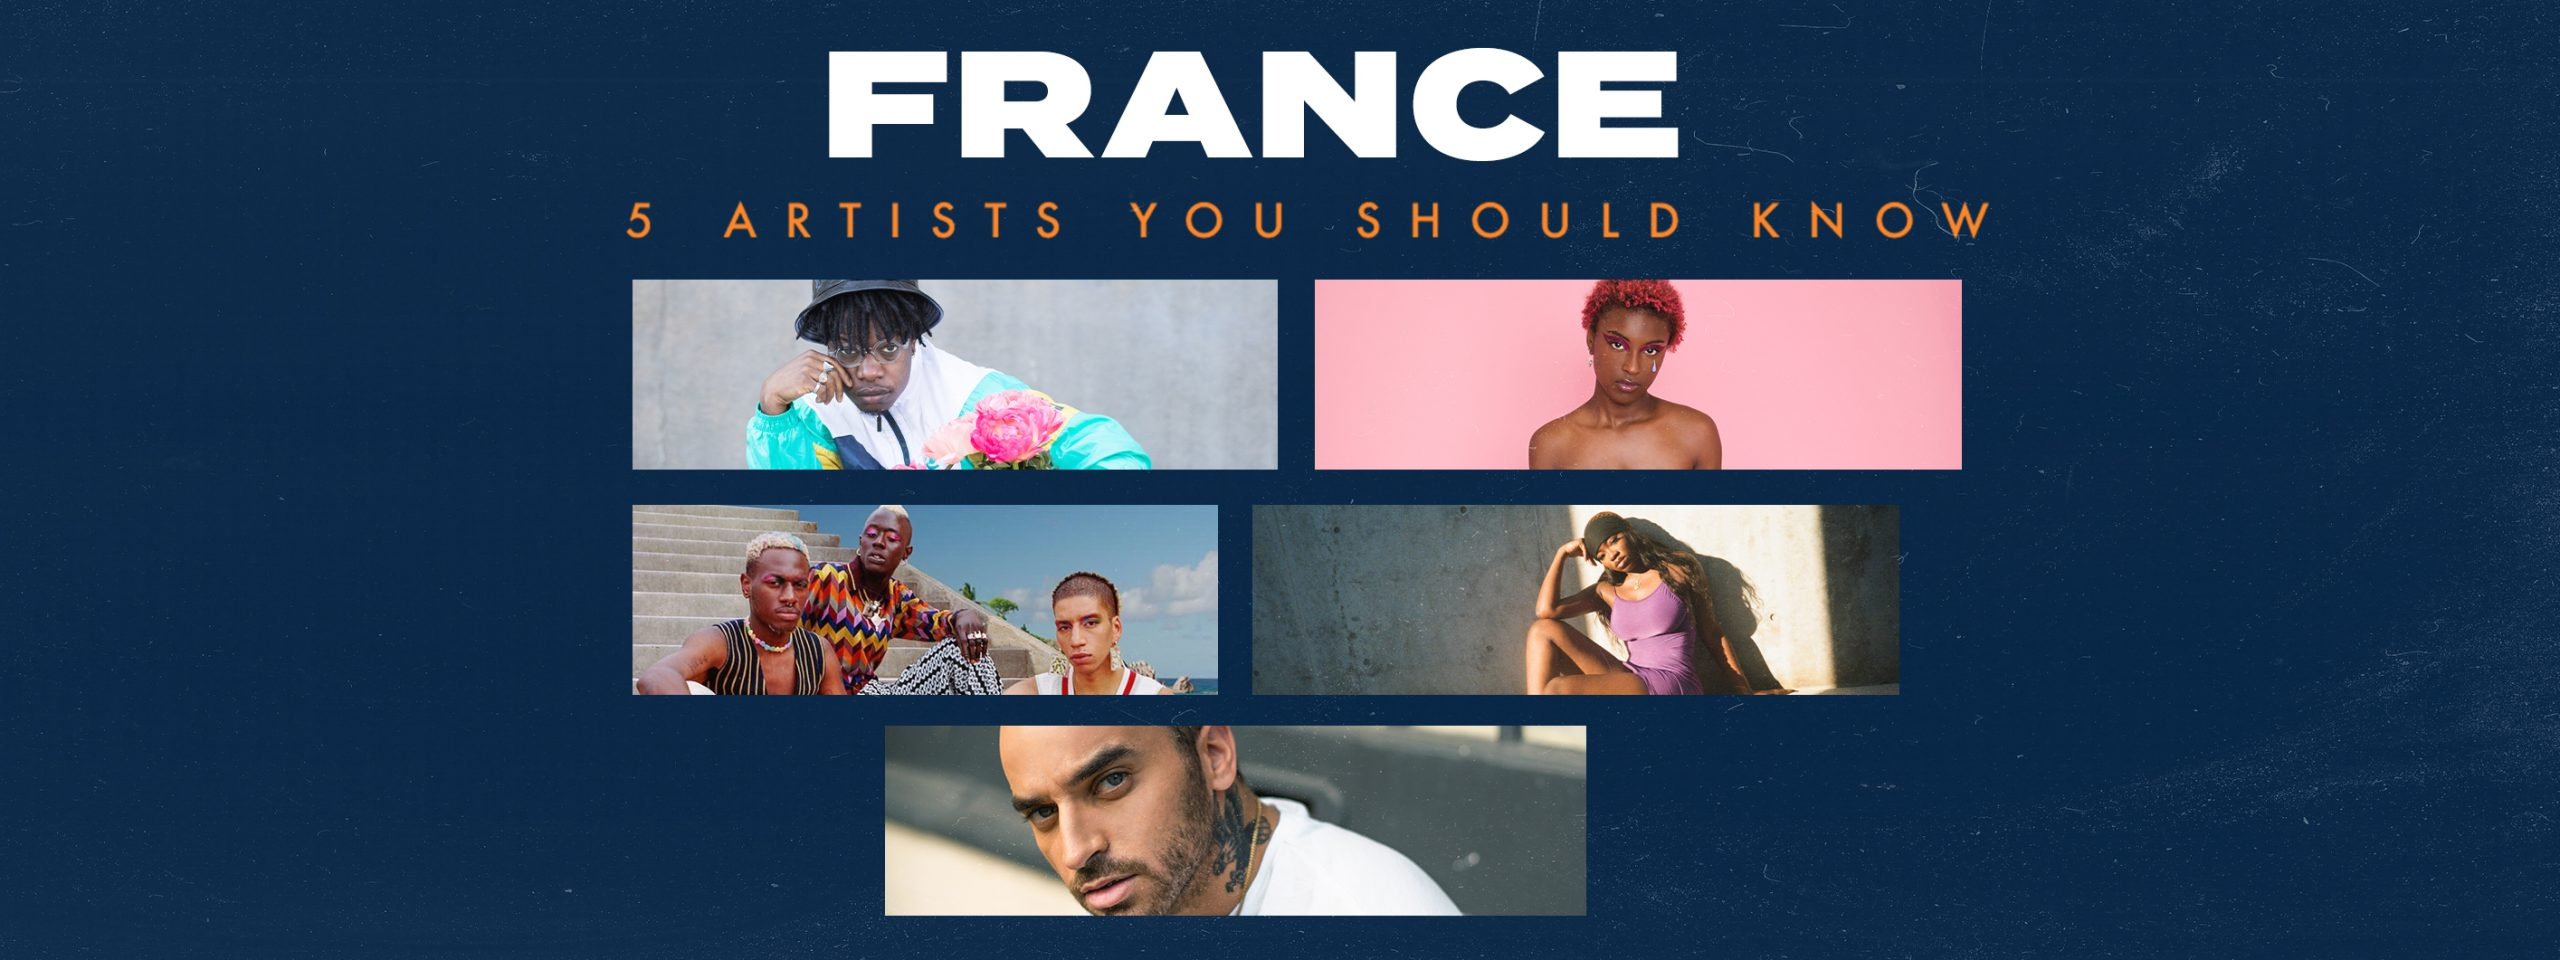 5 Artists You Should Know: France